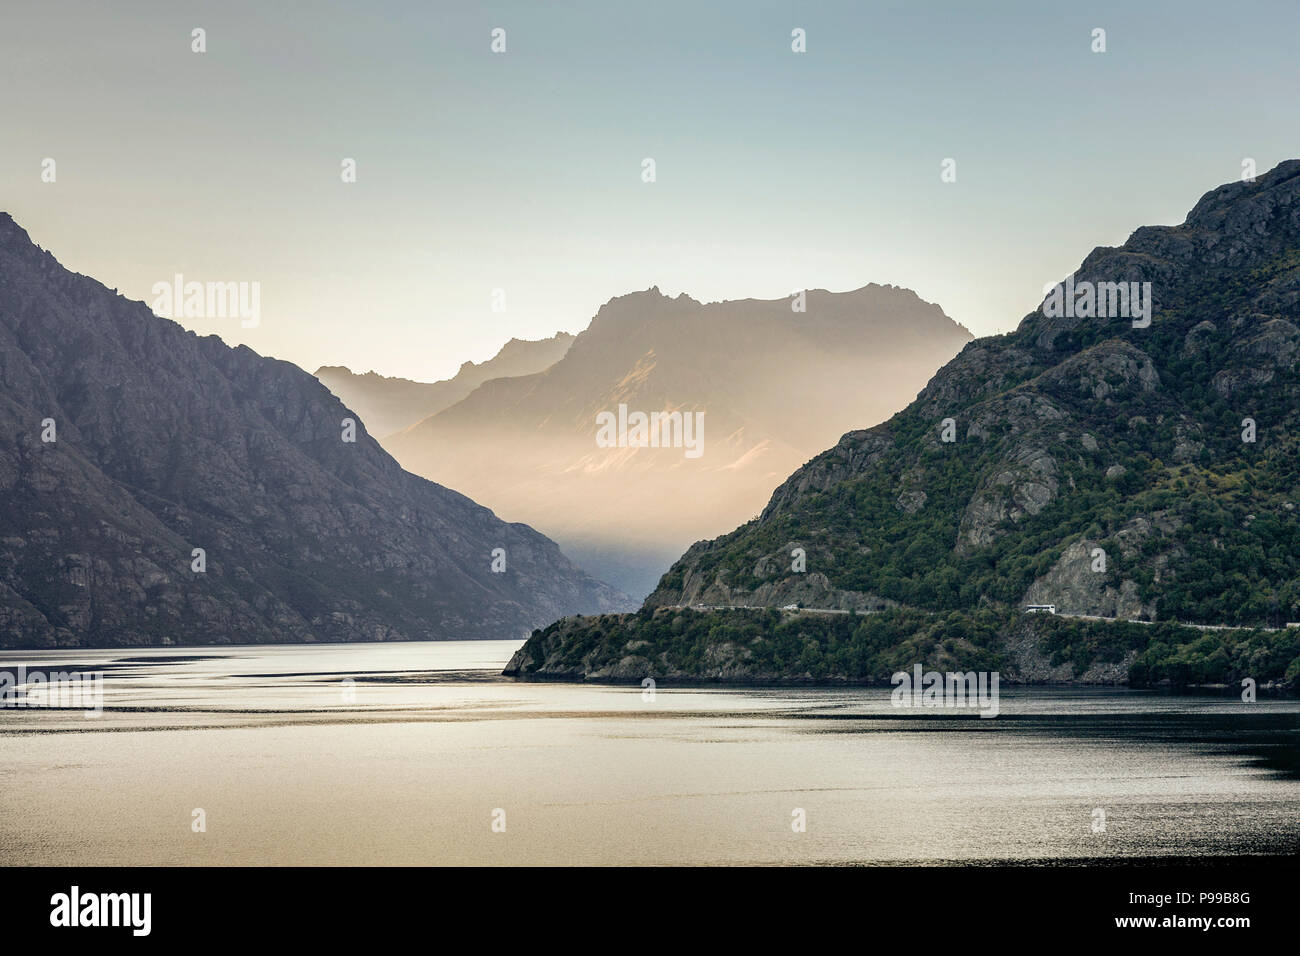 View looking north on the Kingston Arm of Lake Wakatipu, near Queenstown, New Zealand as sunset approaches. - Stock Image